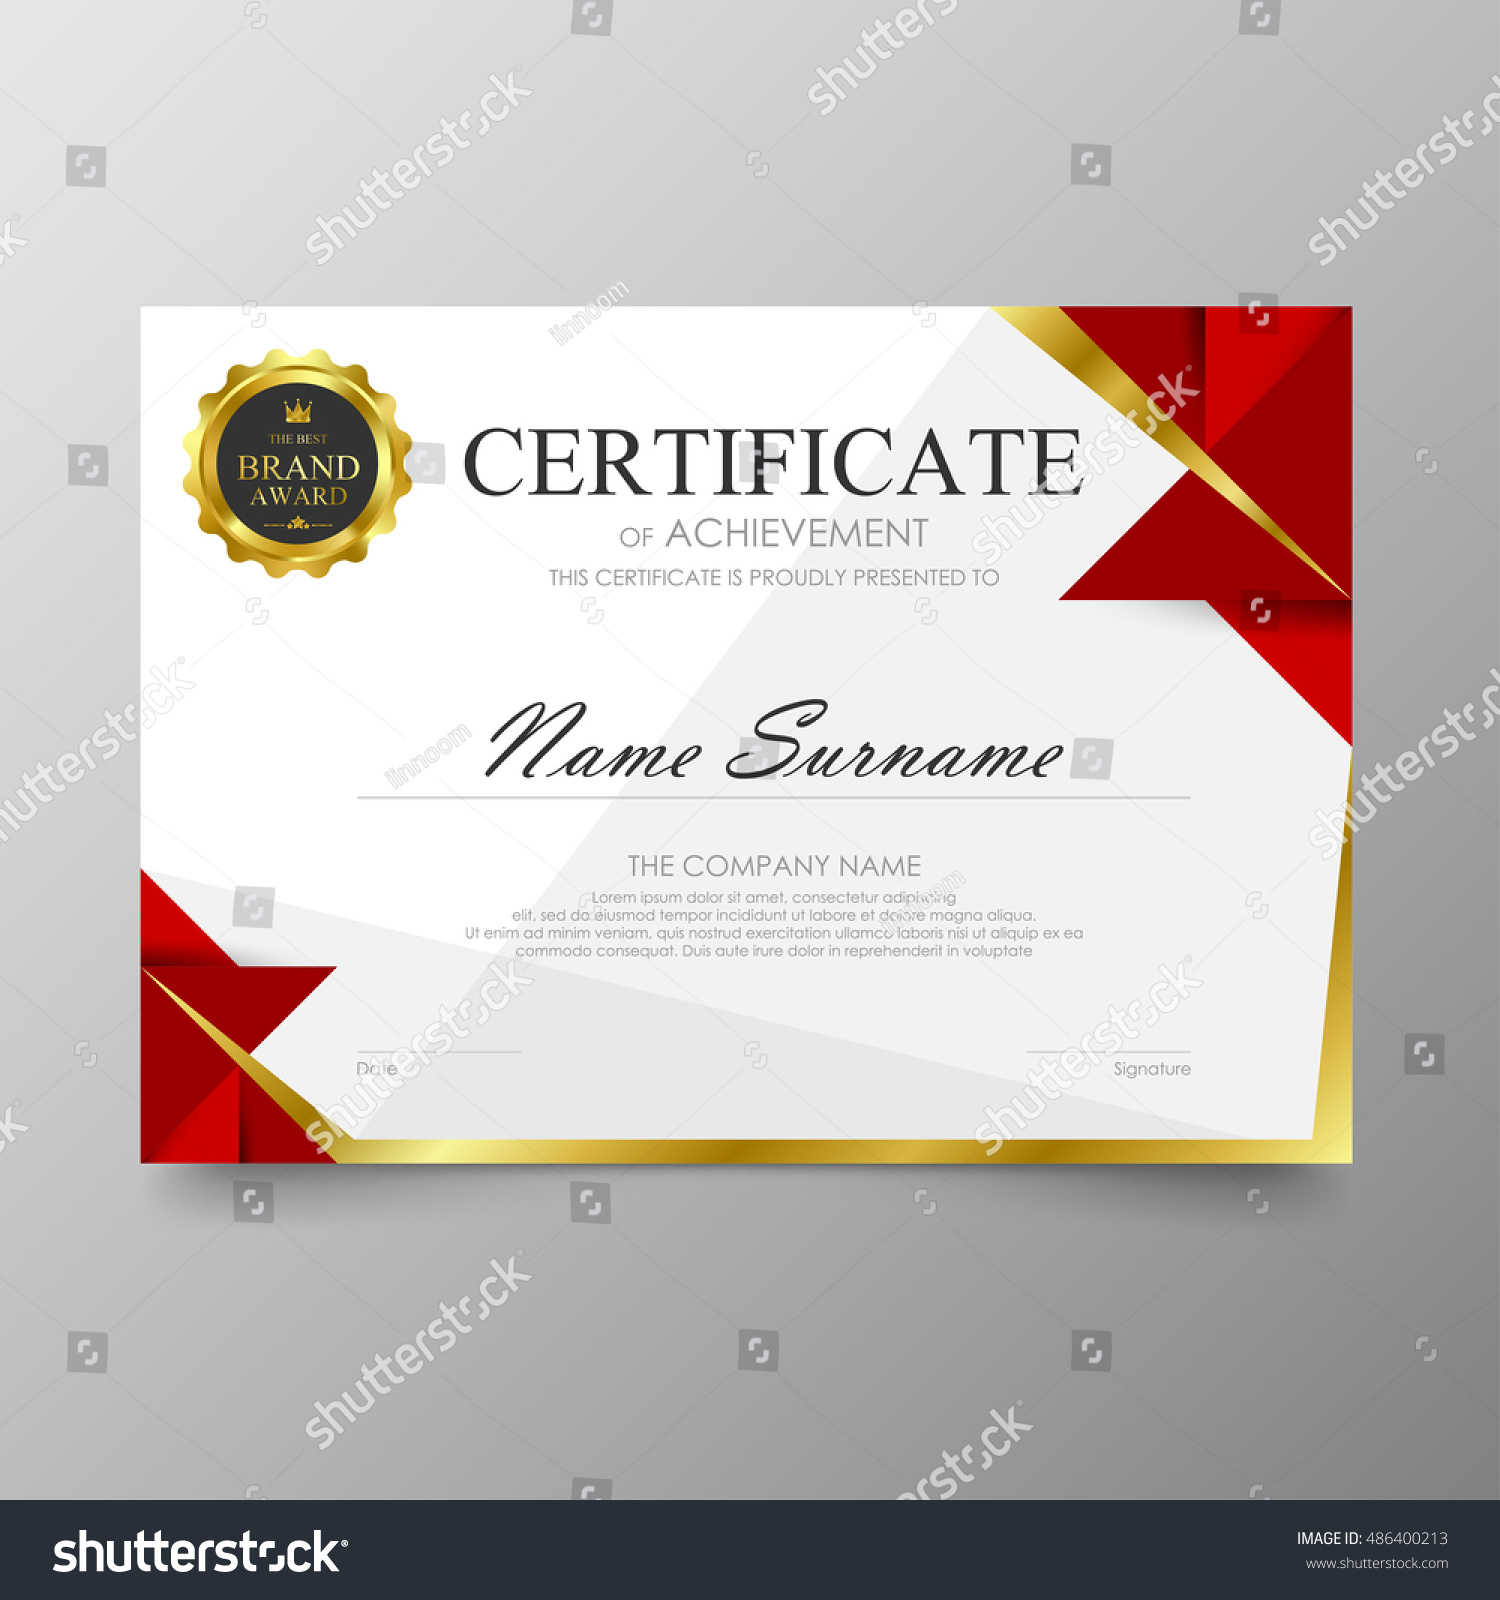 high school diploma certificate fancy design templates - certificate template awards diploma background vector